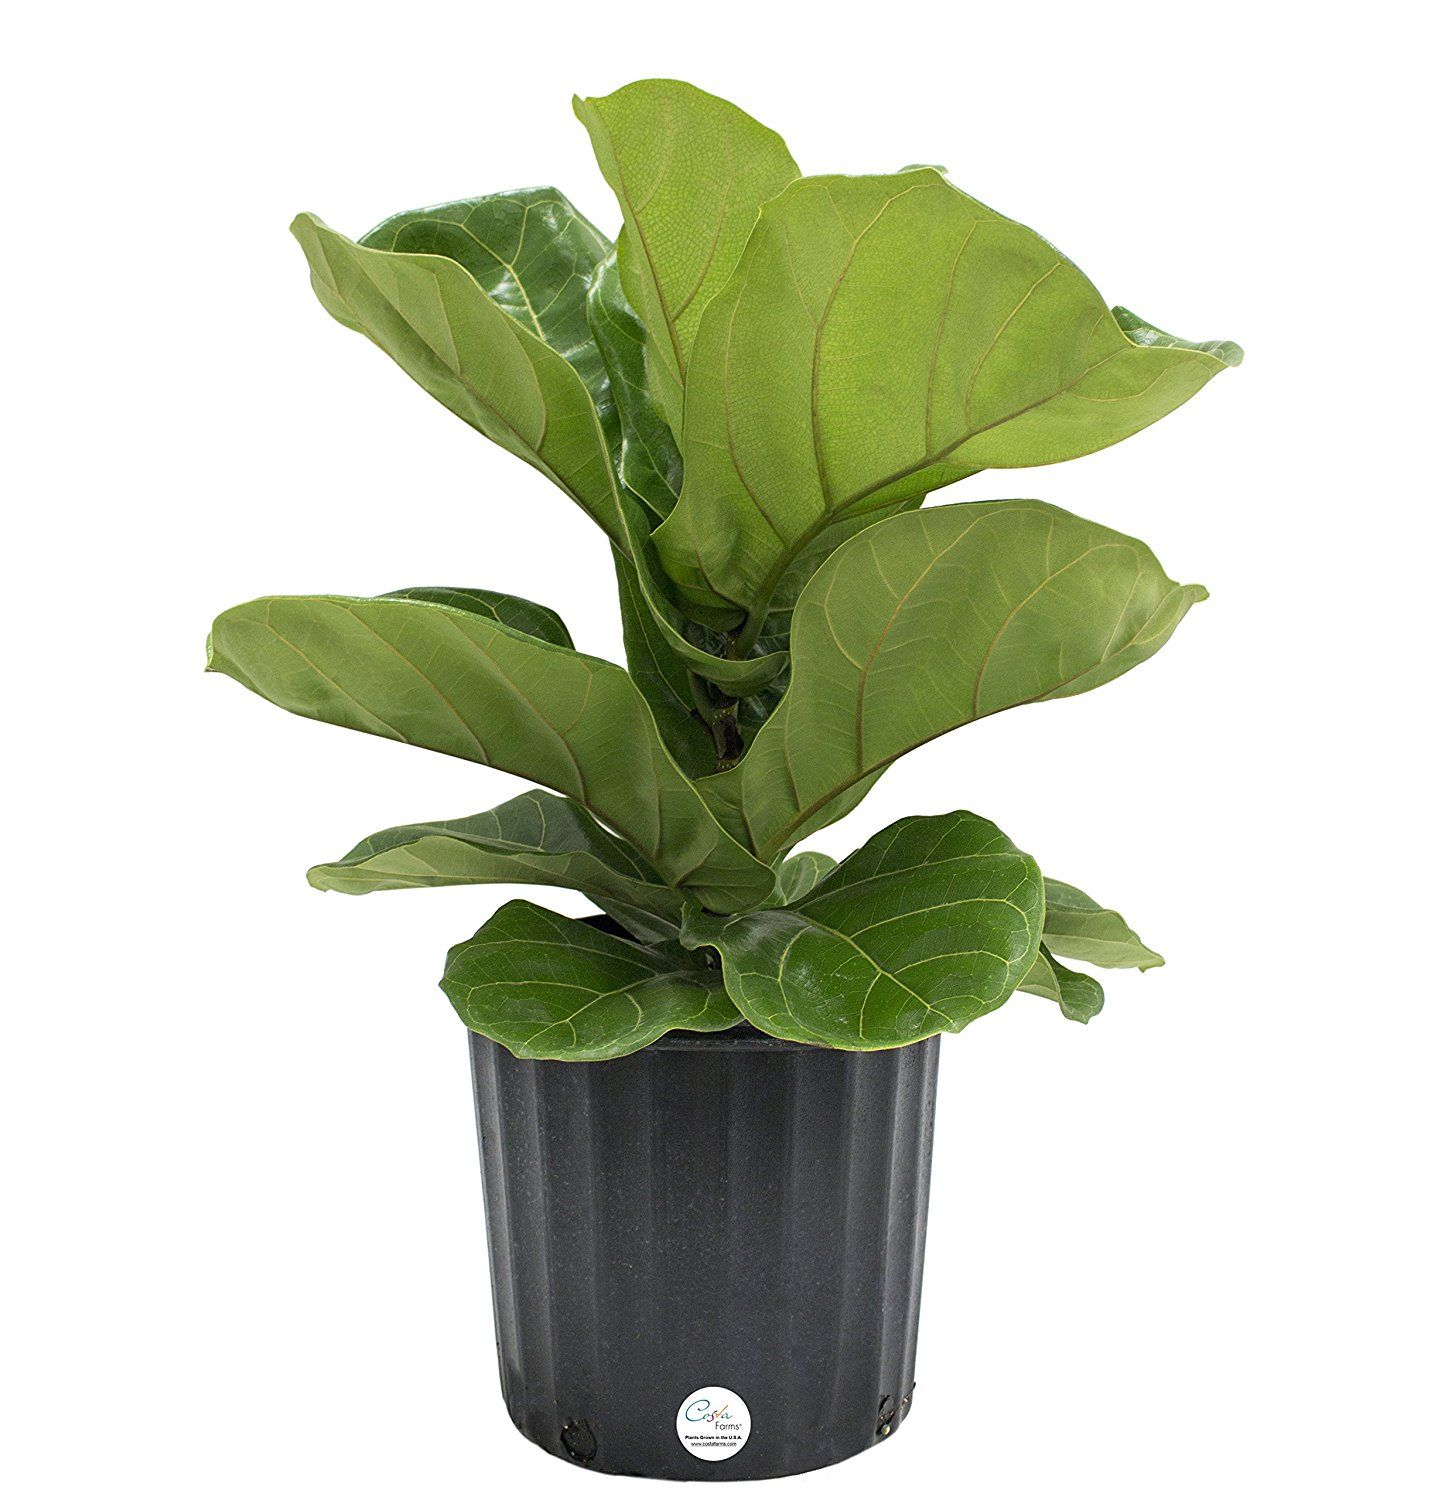 Amazoncom Costa Farms, Premium Live Indoor Burgundy Rubber Plant, Ficus